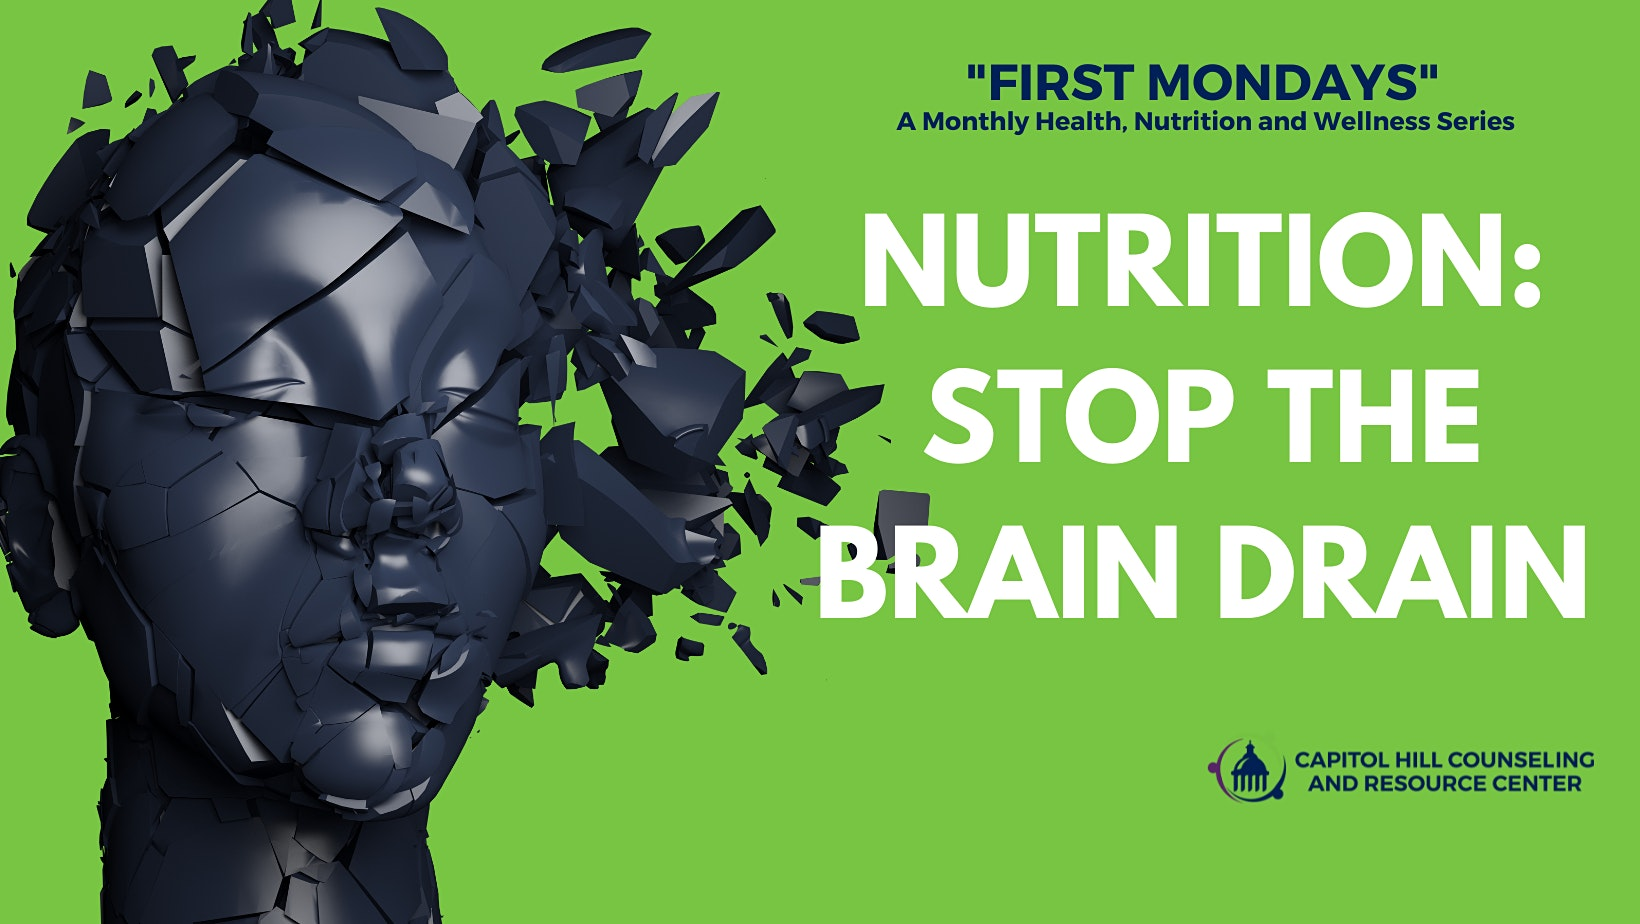 Nutrition: Stop the Brain Drain...A First Mondays Health and Wellness Event